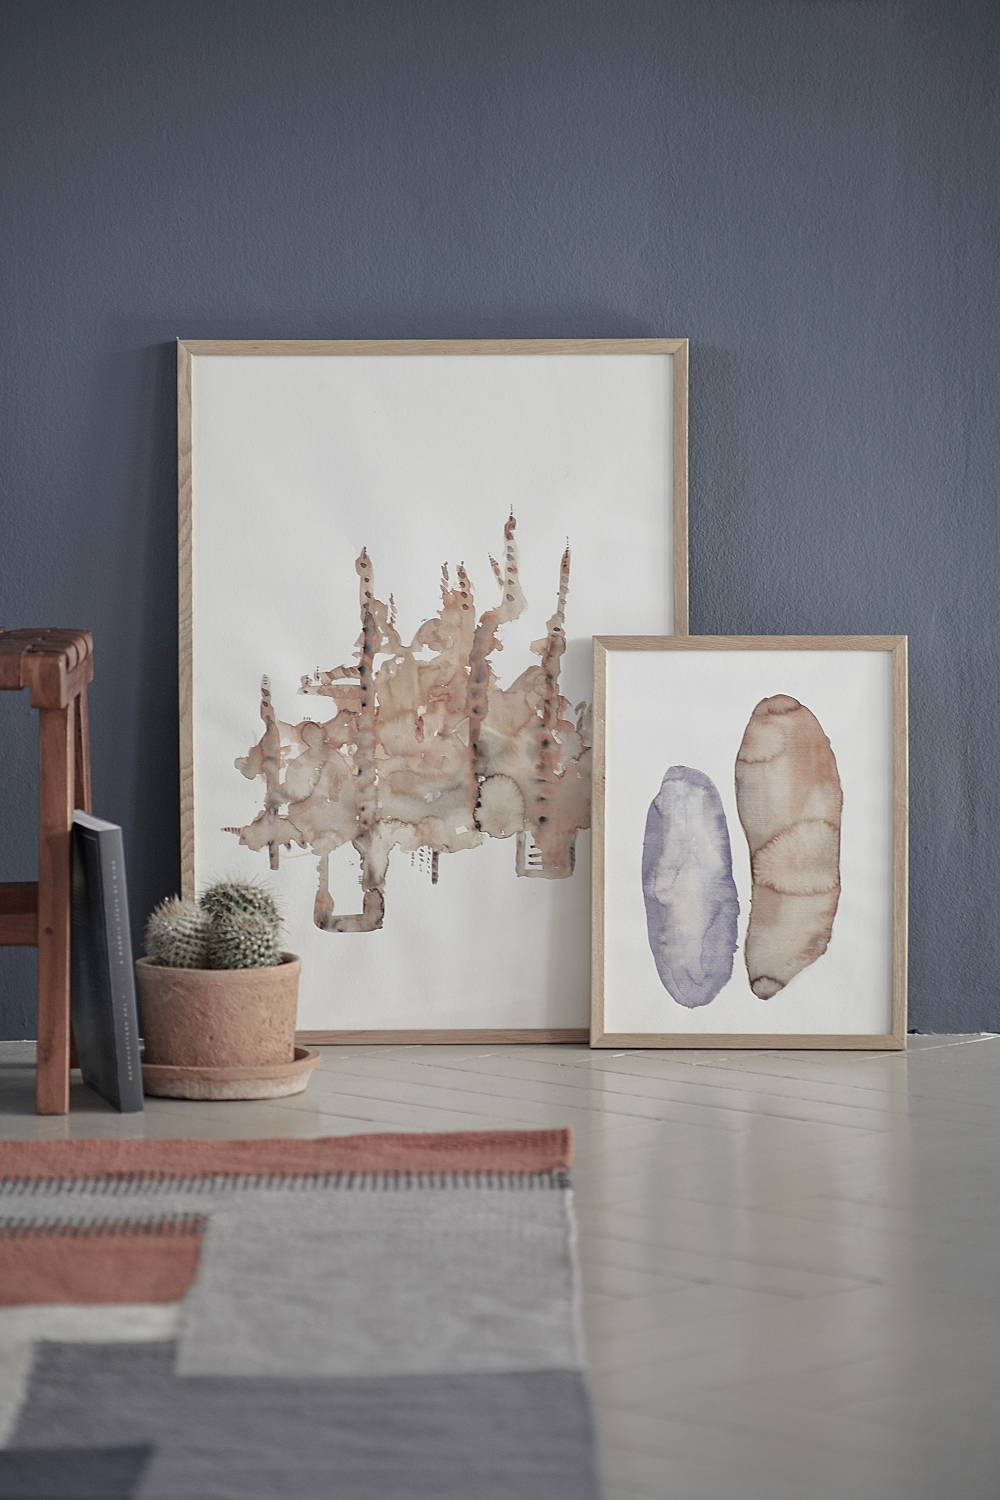 art watercolour pieces with cactus and rug